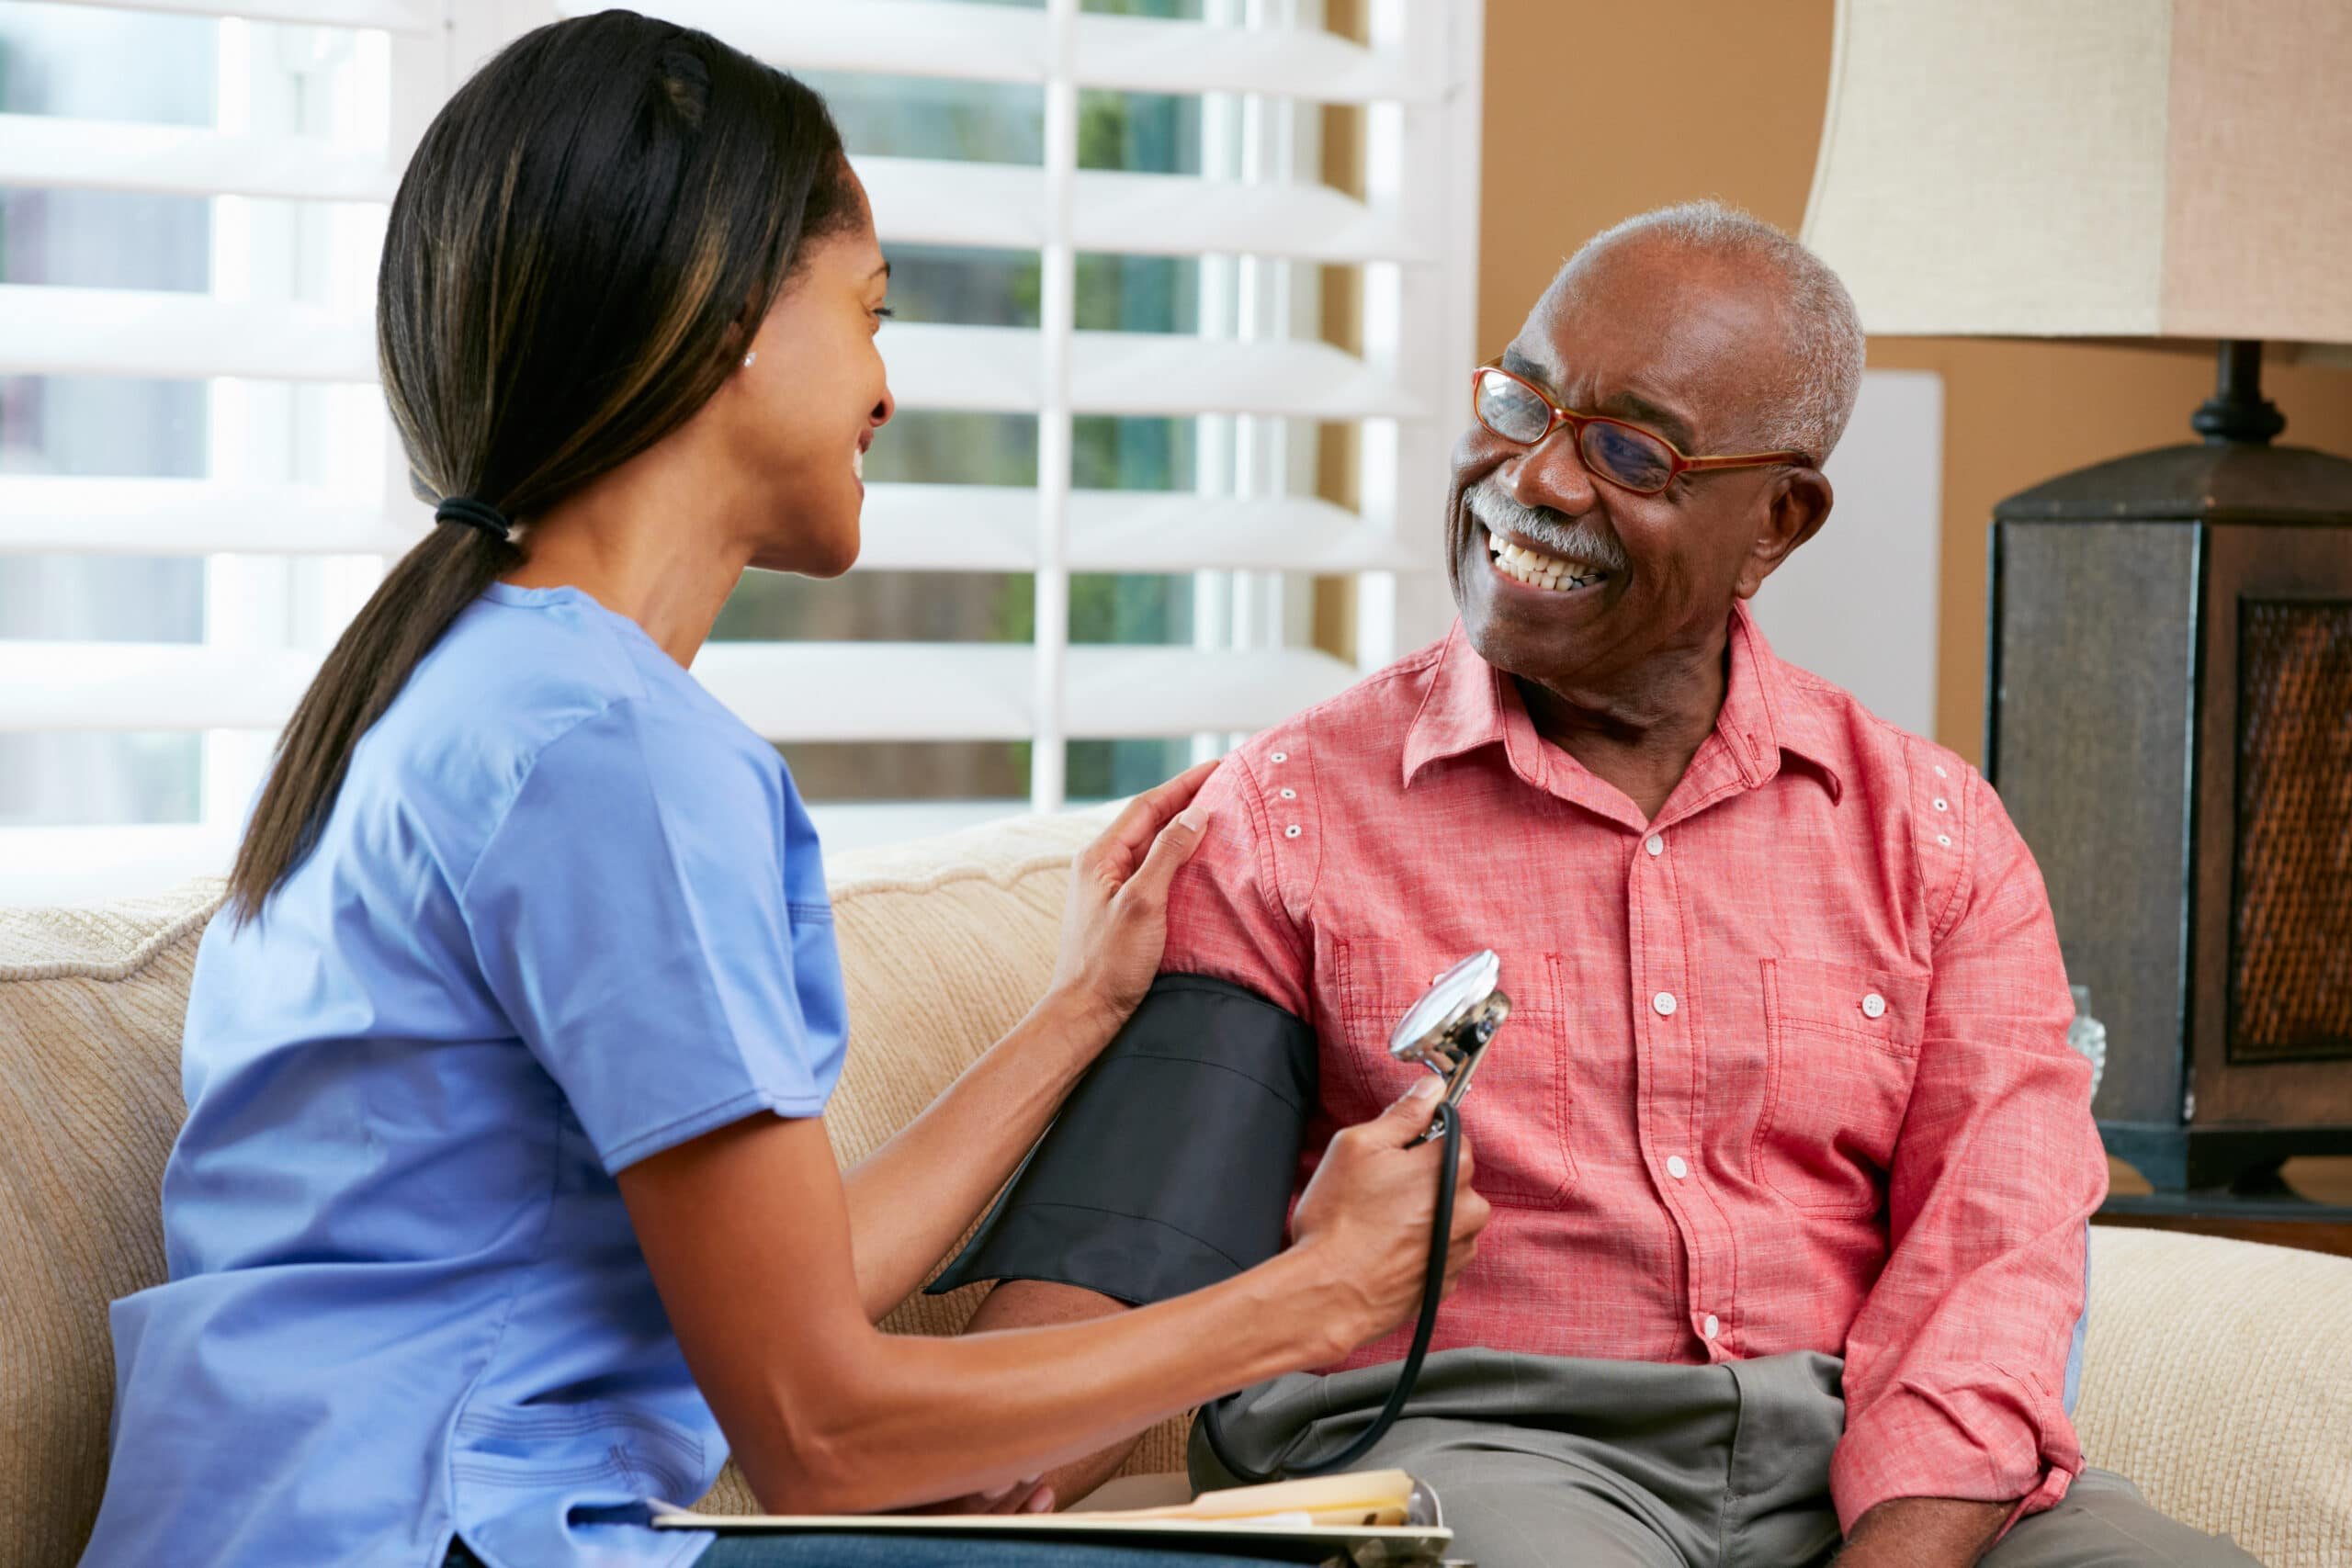 Physician taking blood pressure of elderly patient in living room of patient's home.